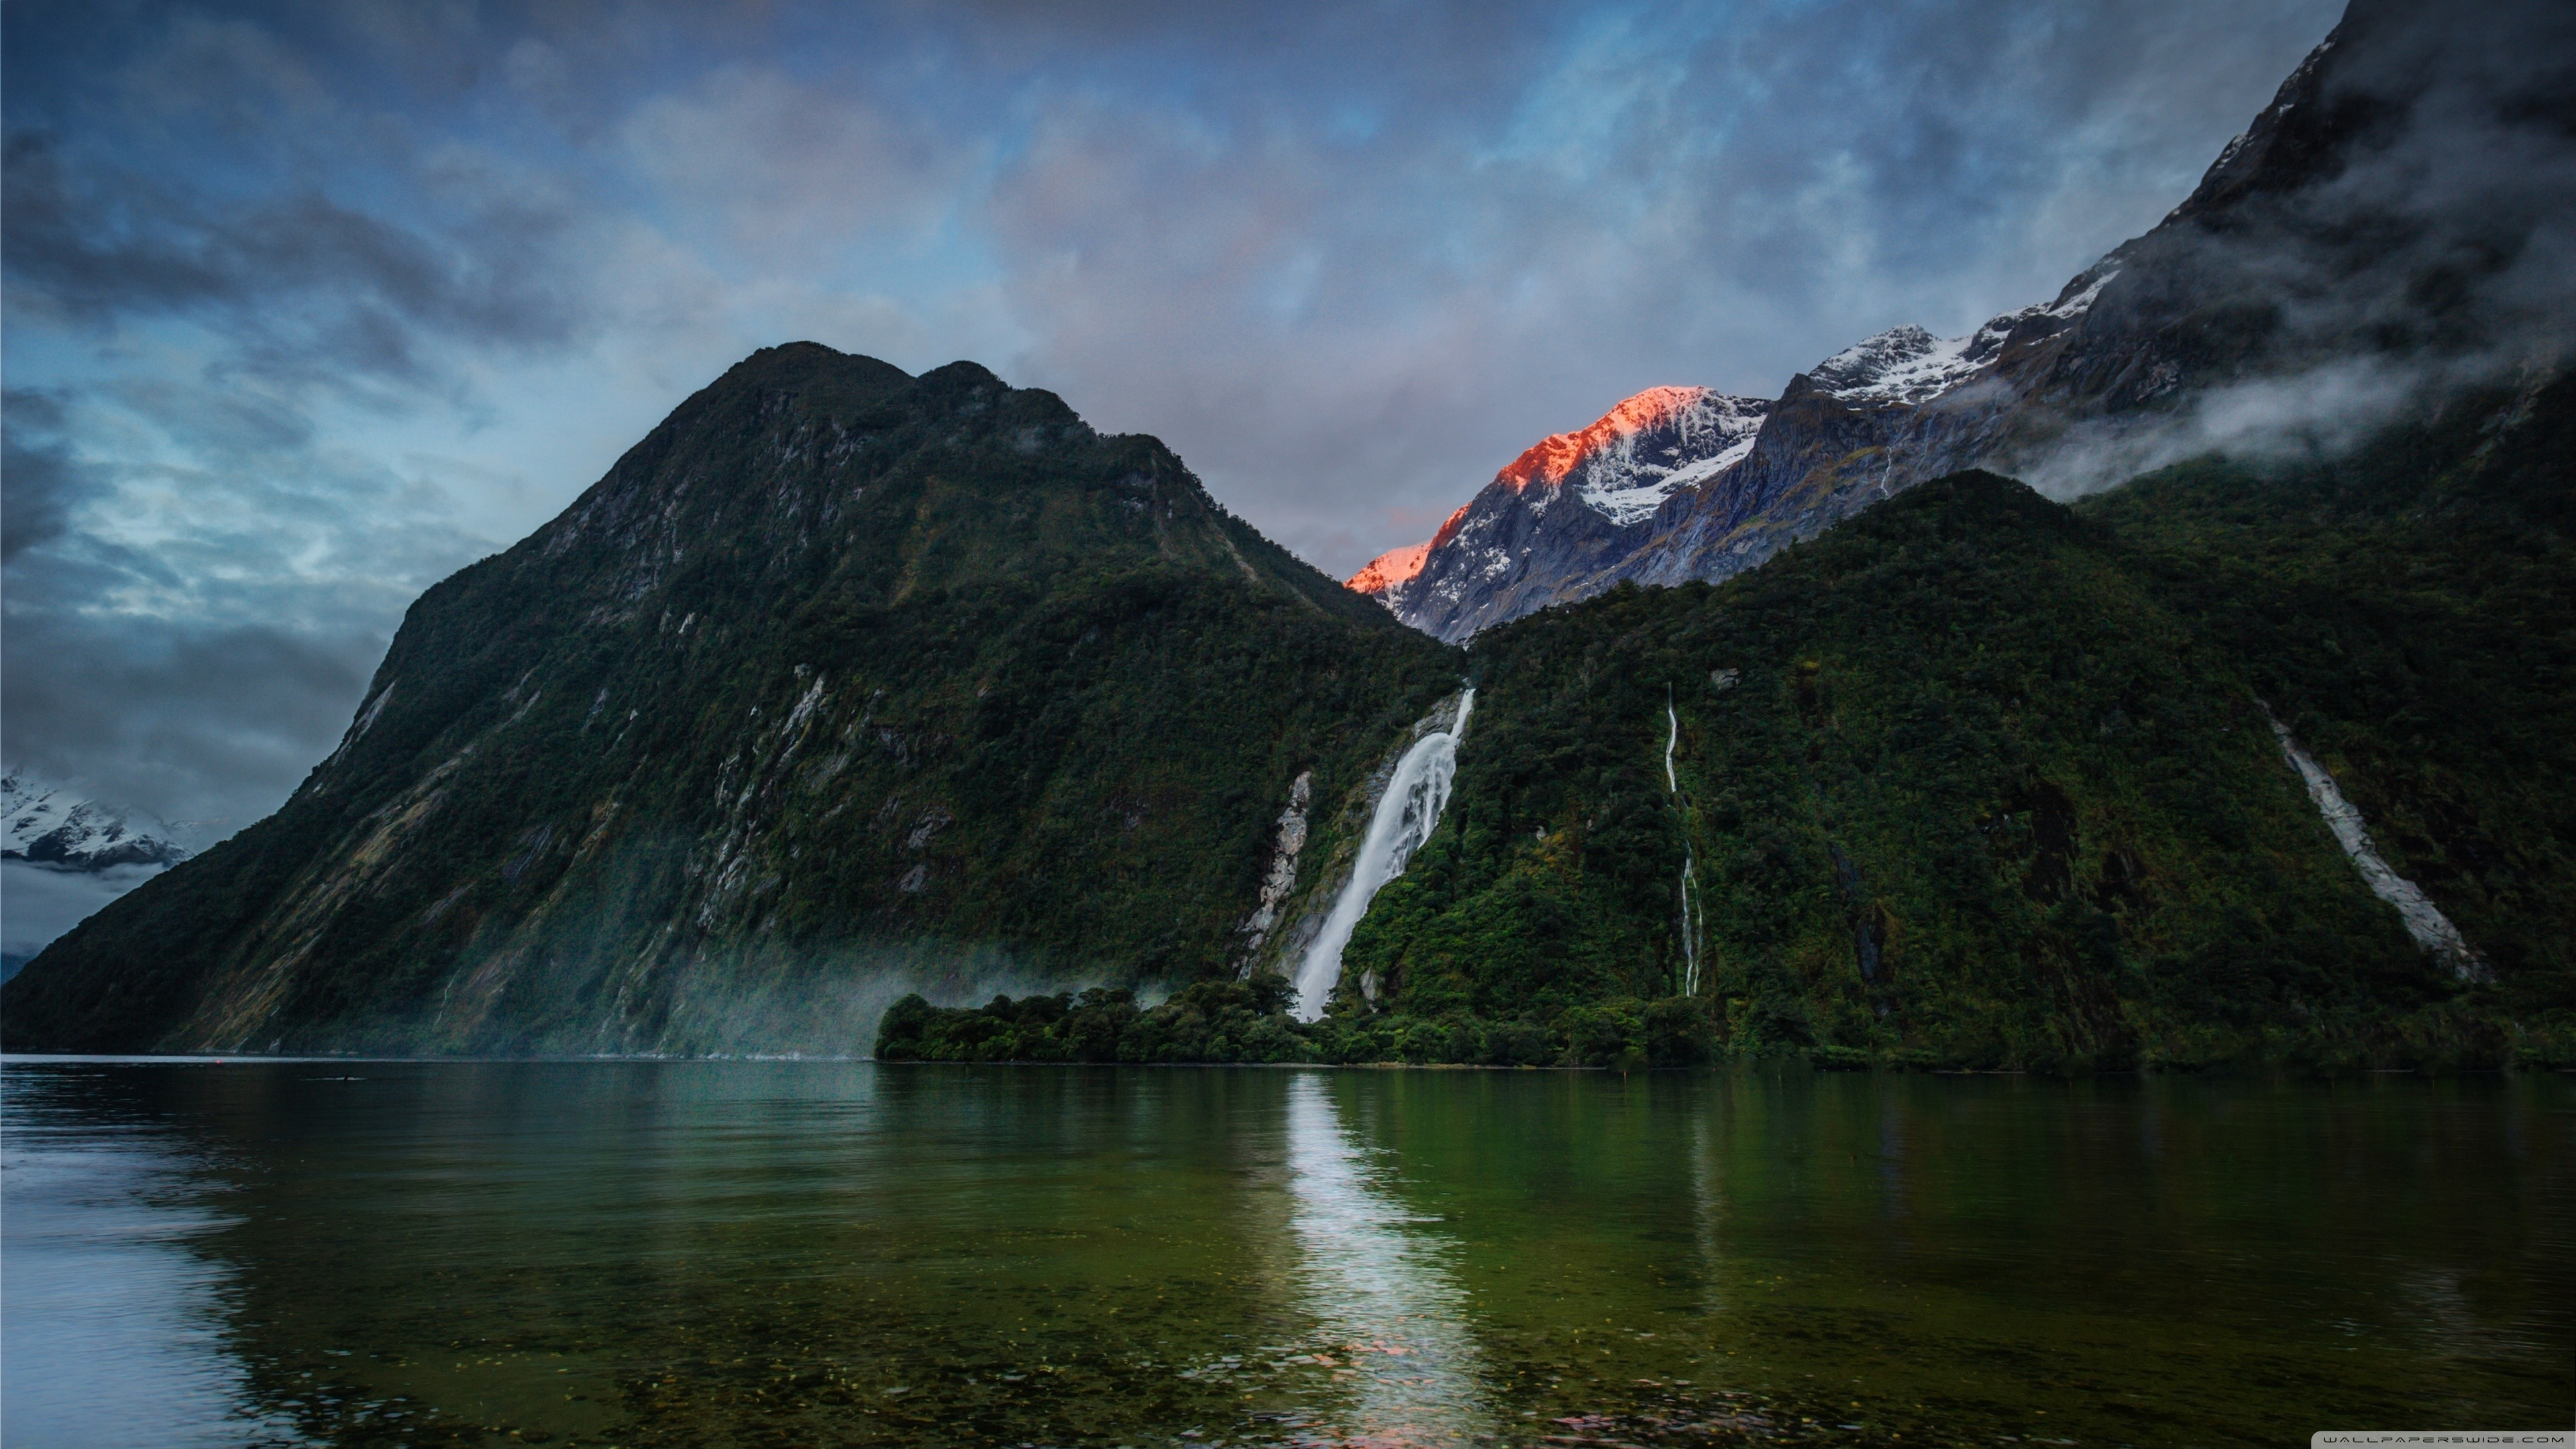 General 3840x2160 landscape nature Fiordland National Park New Zealand waterfall mountains